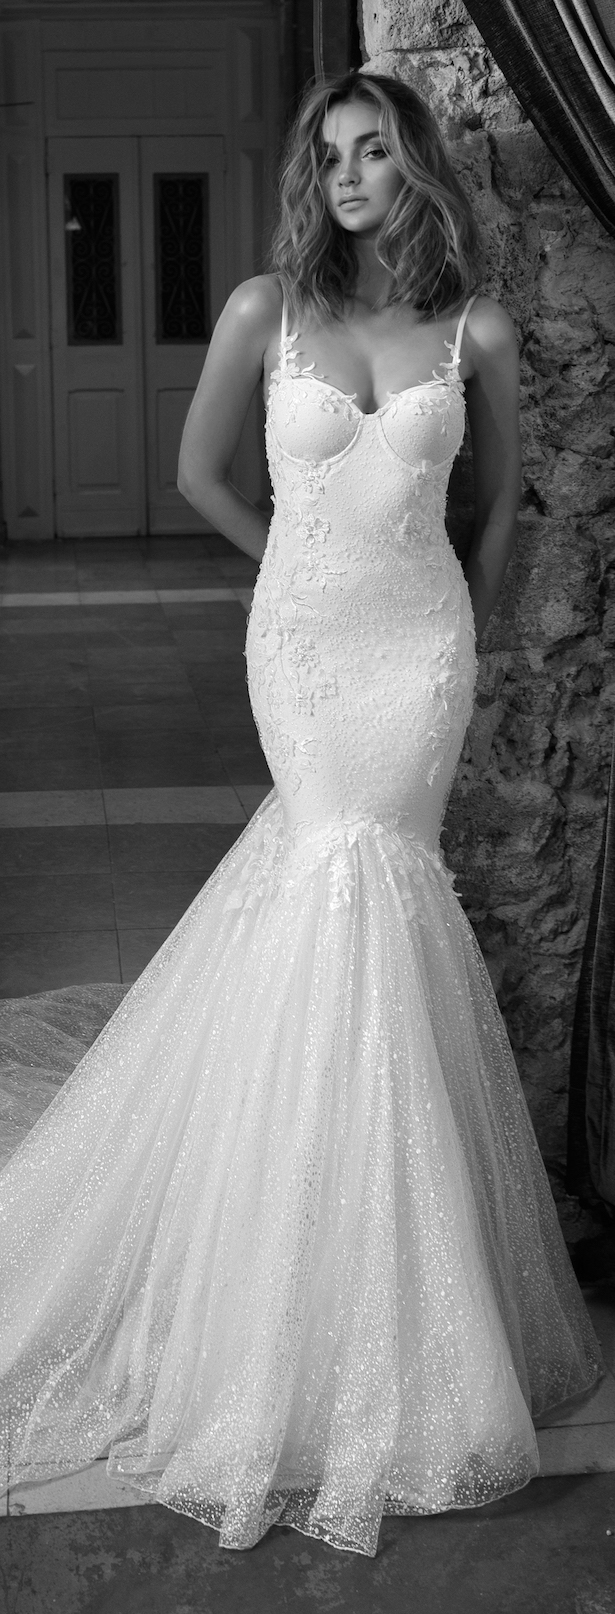 Wedding Dress by Julie Vino 2017 Romanzo Collection | Mermaid lace bridal gown